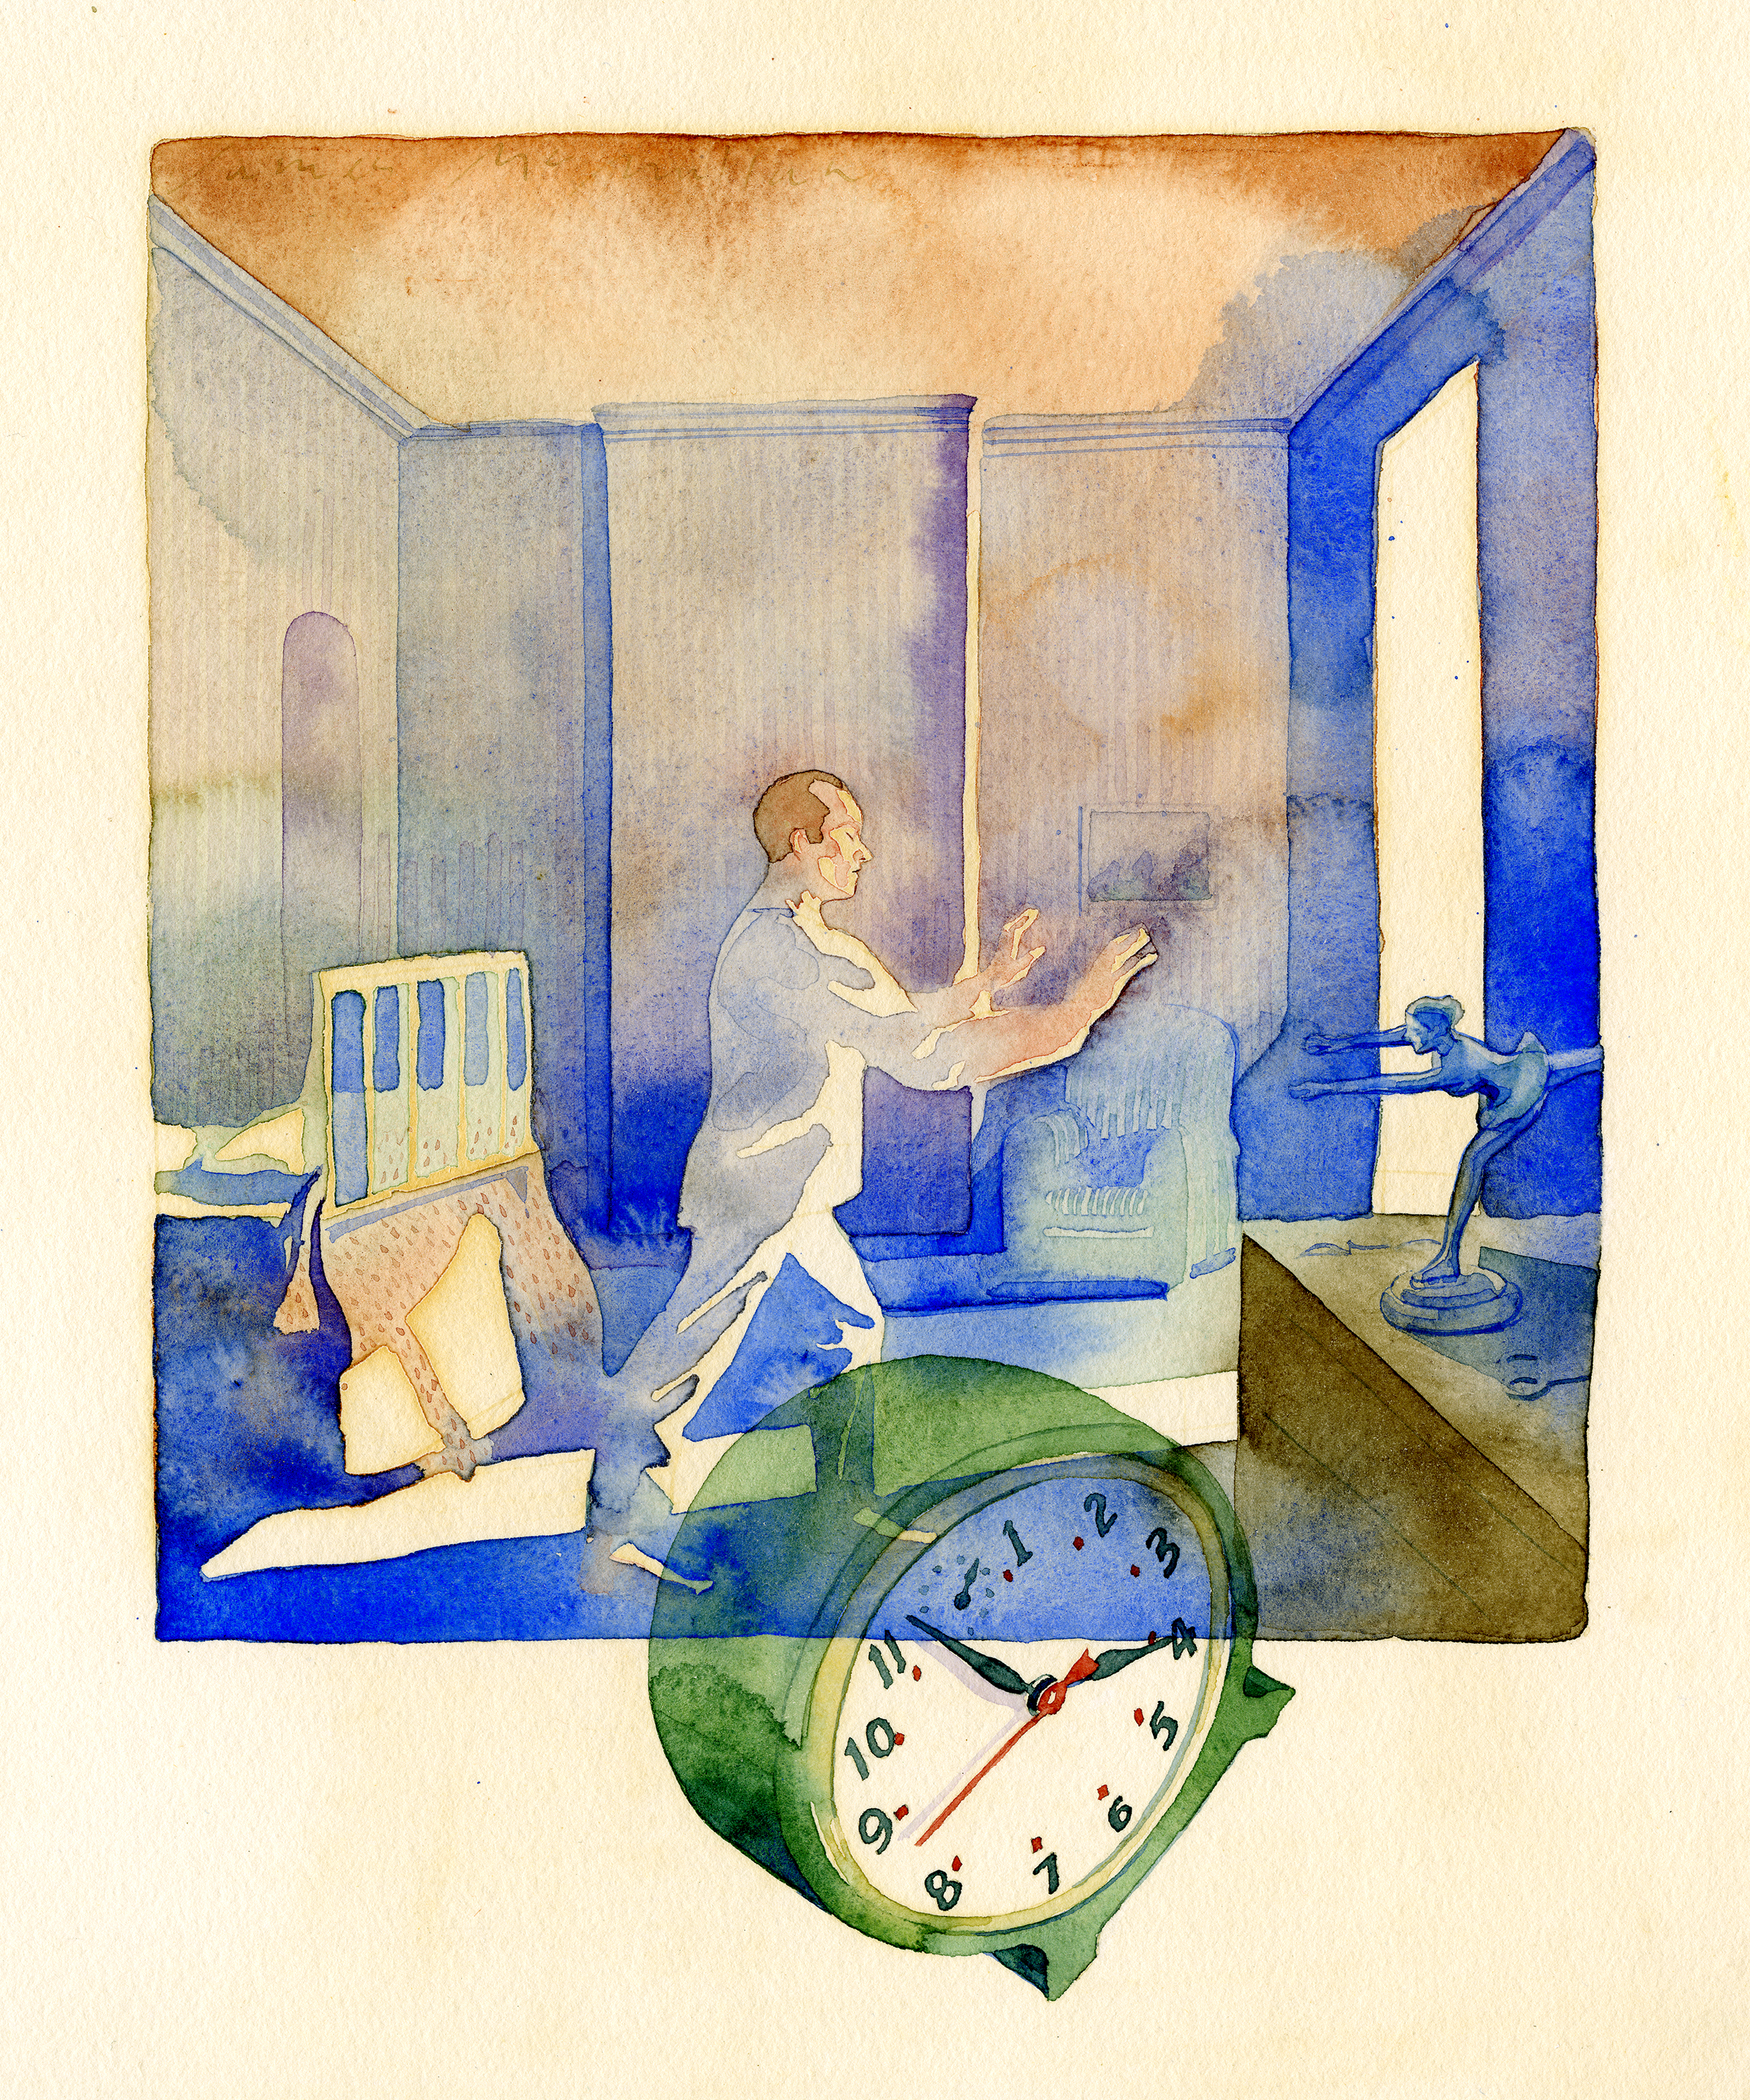 Watercolor painting of a man sleepwalking towards an open door in his bedroom, with a large green alarm clock superimposed.